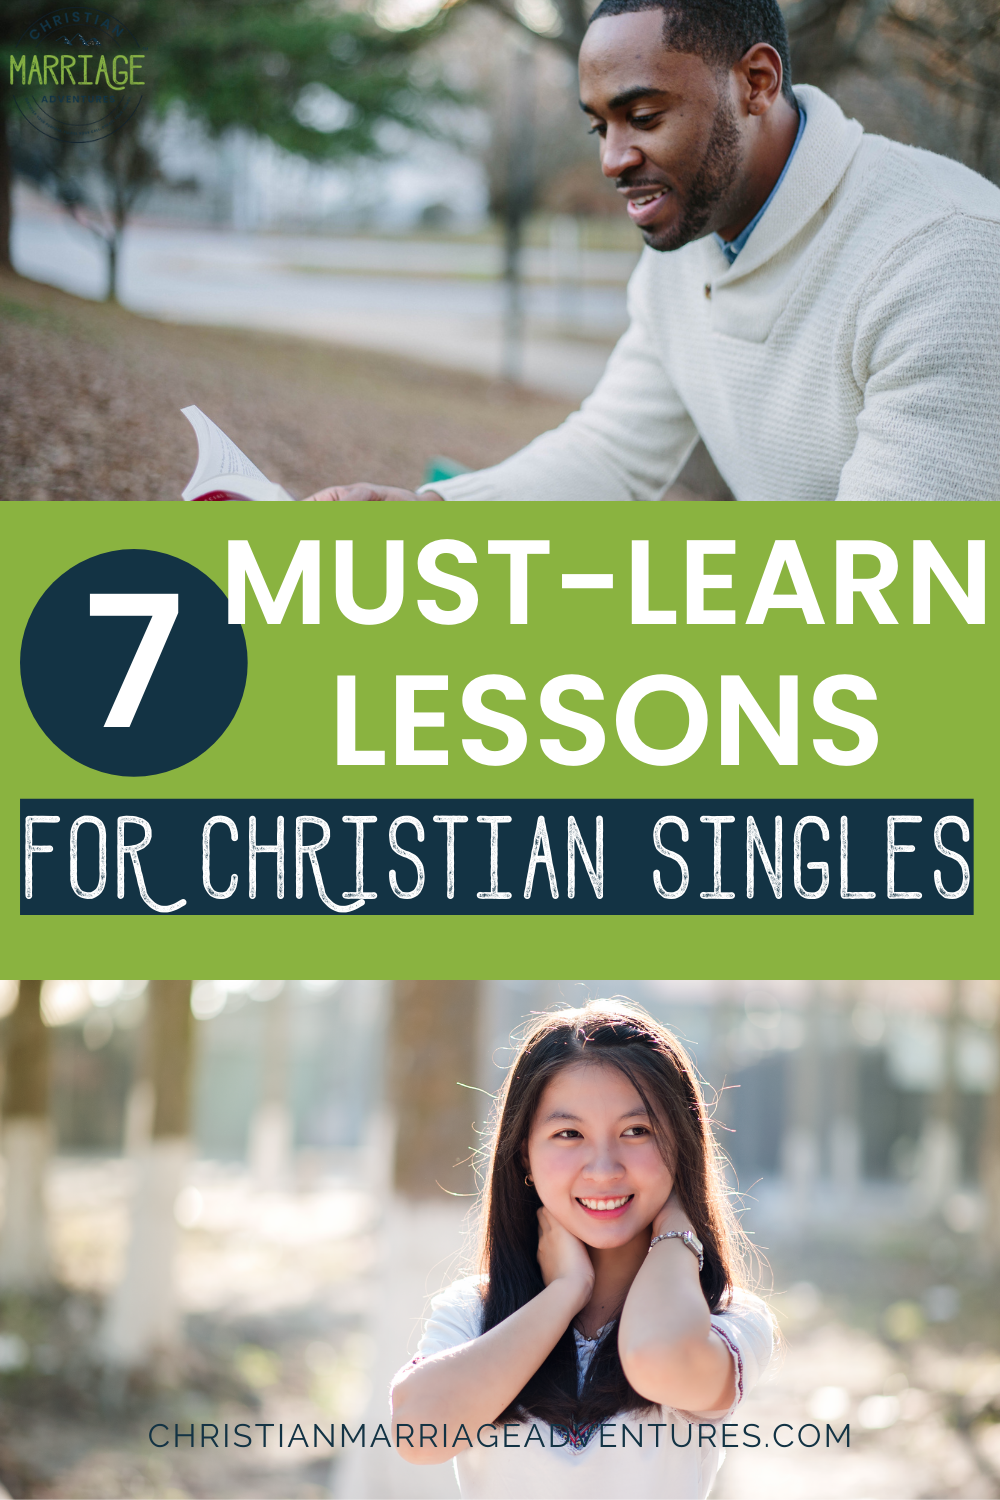 7 Must-Learn Lessons for Christian Singles